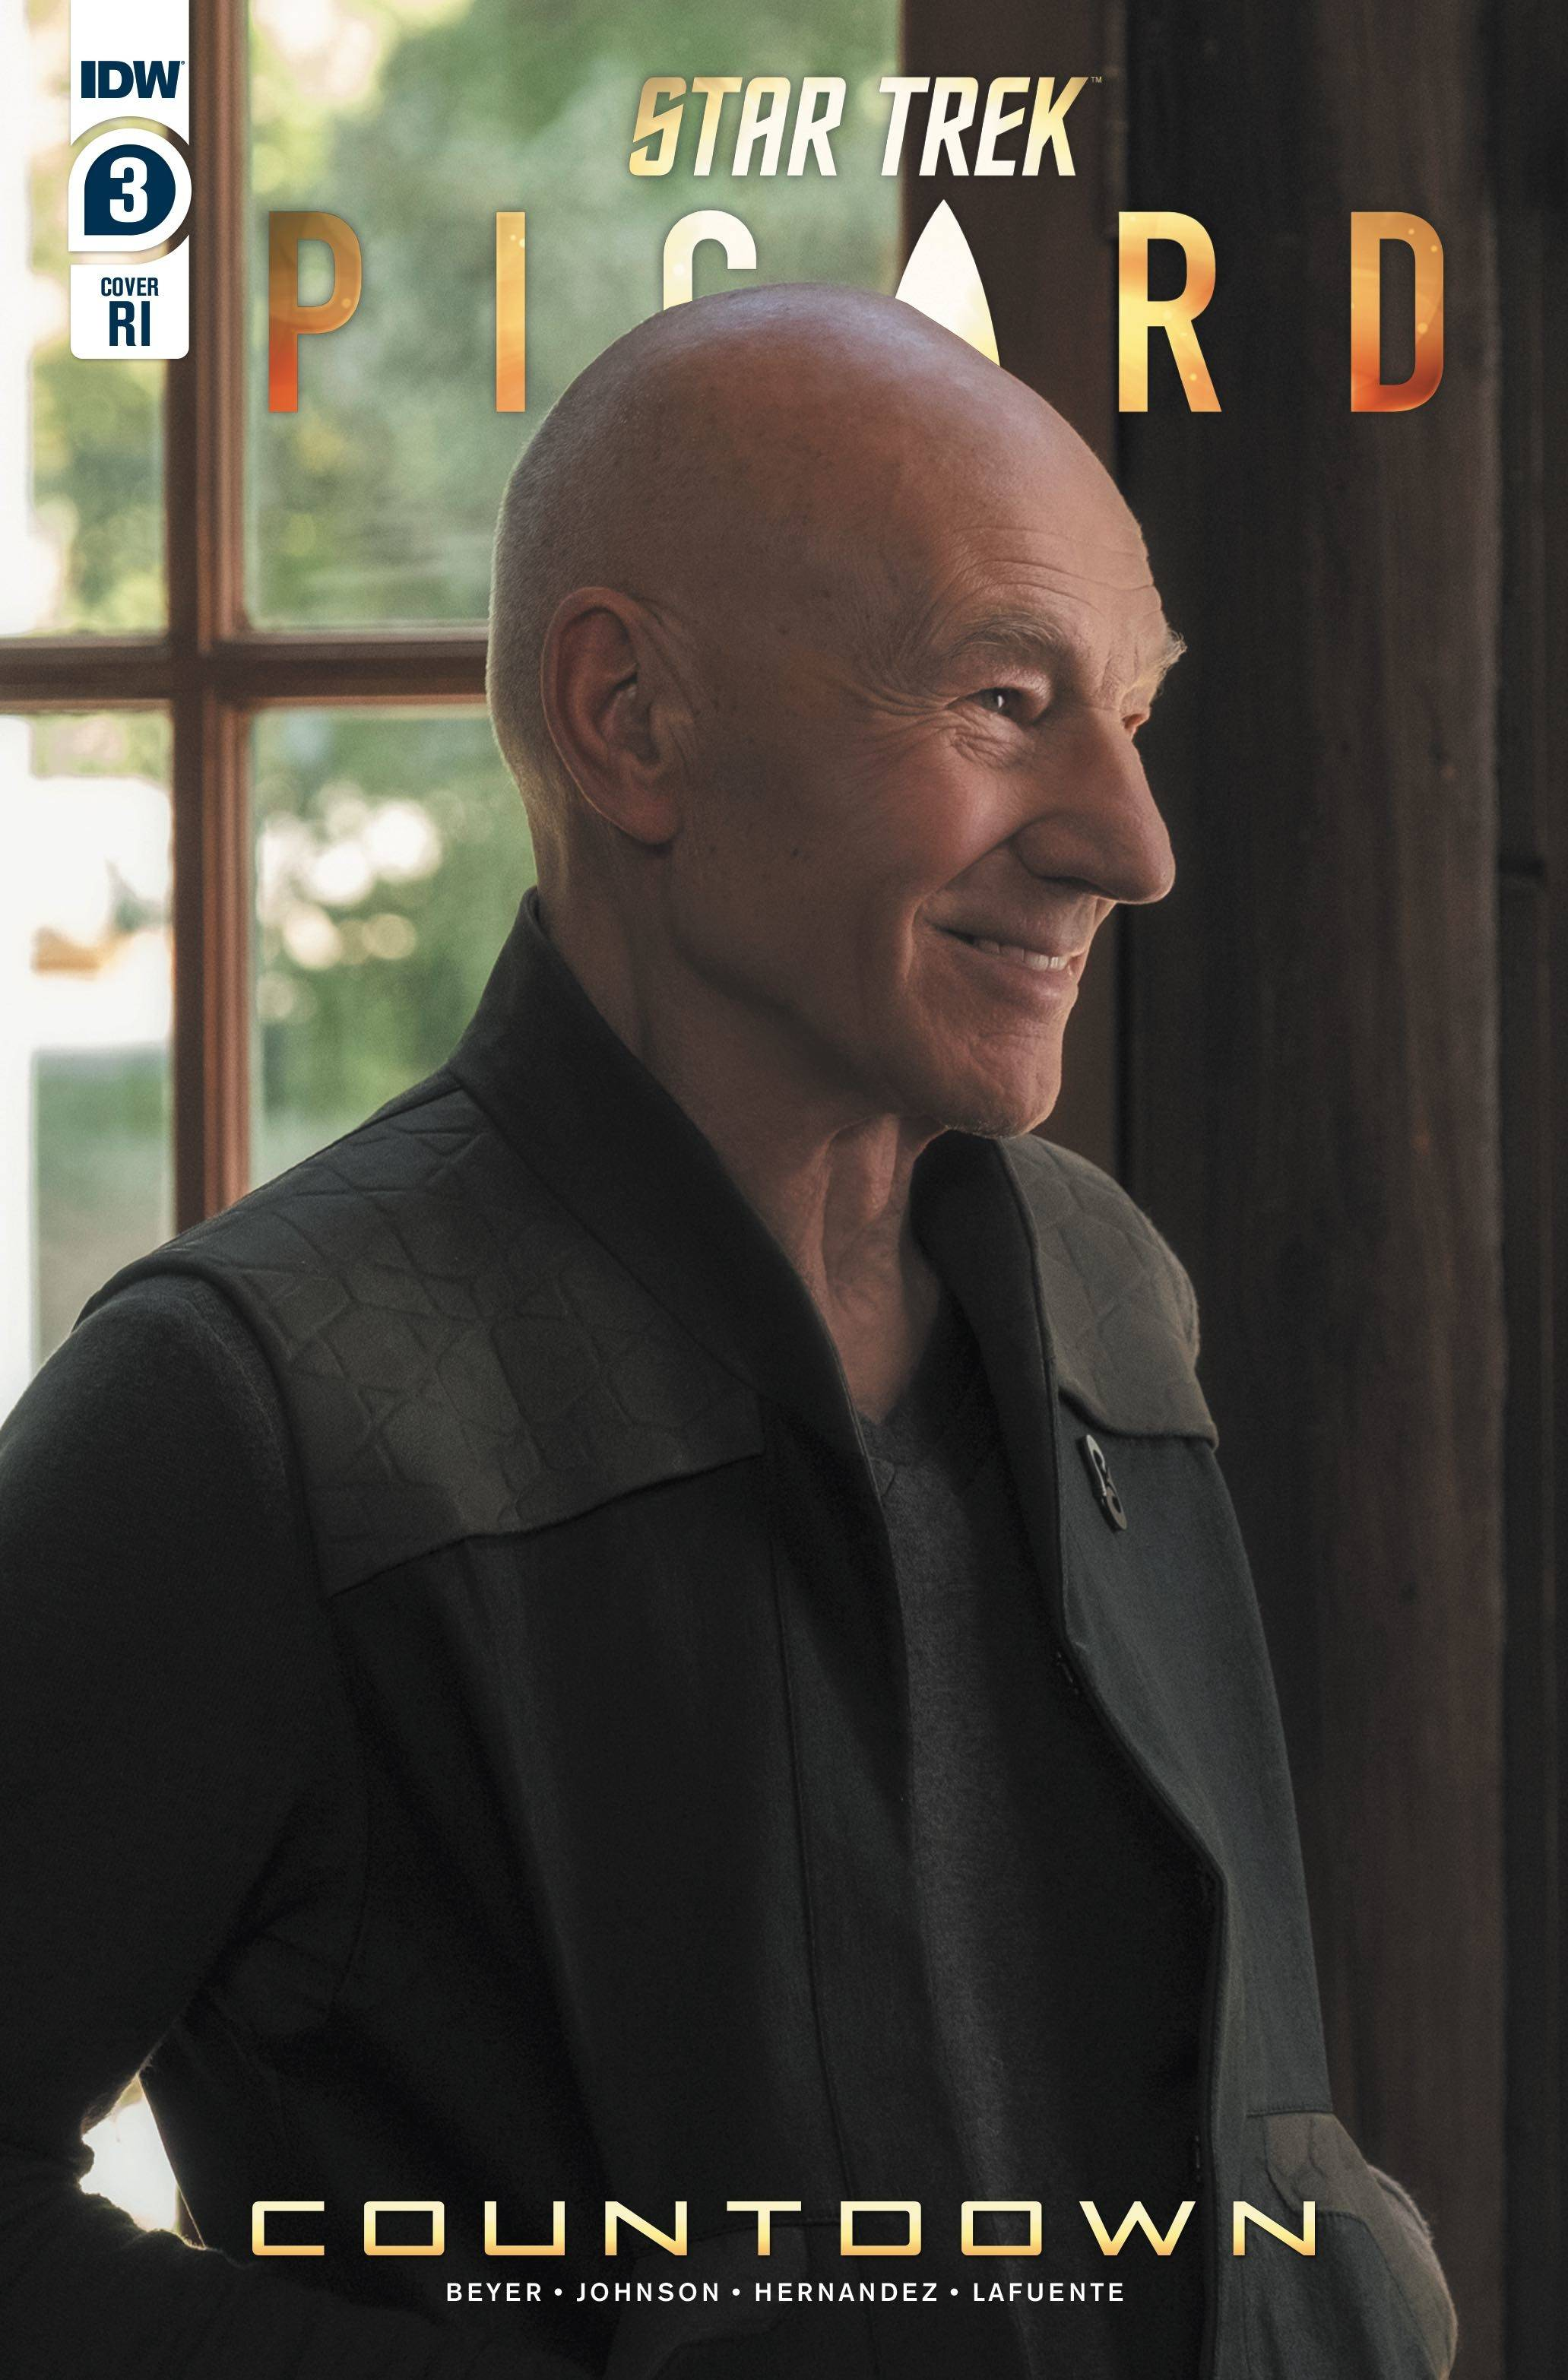 STAR TREK PICARD #3 (OF 3) 10 COPY INCV PHOTO